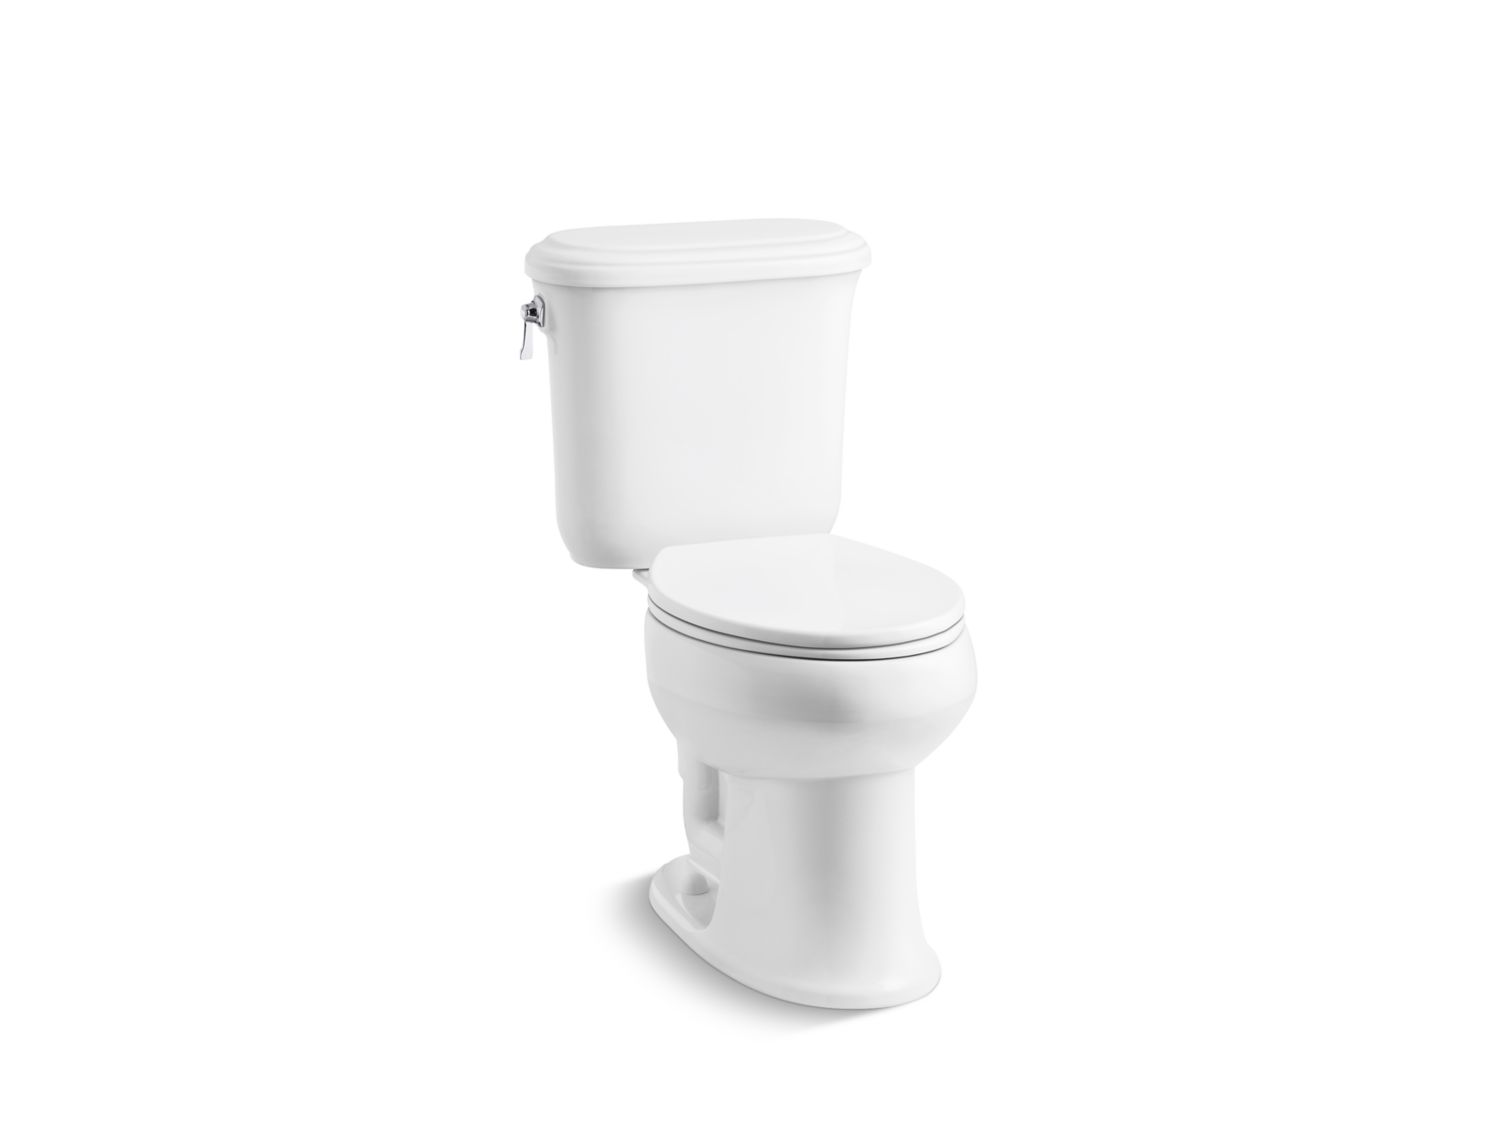 Kennebec Two-Piece High-Efficiency Toilet, Less Seat | P70320-00 ...